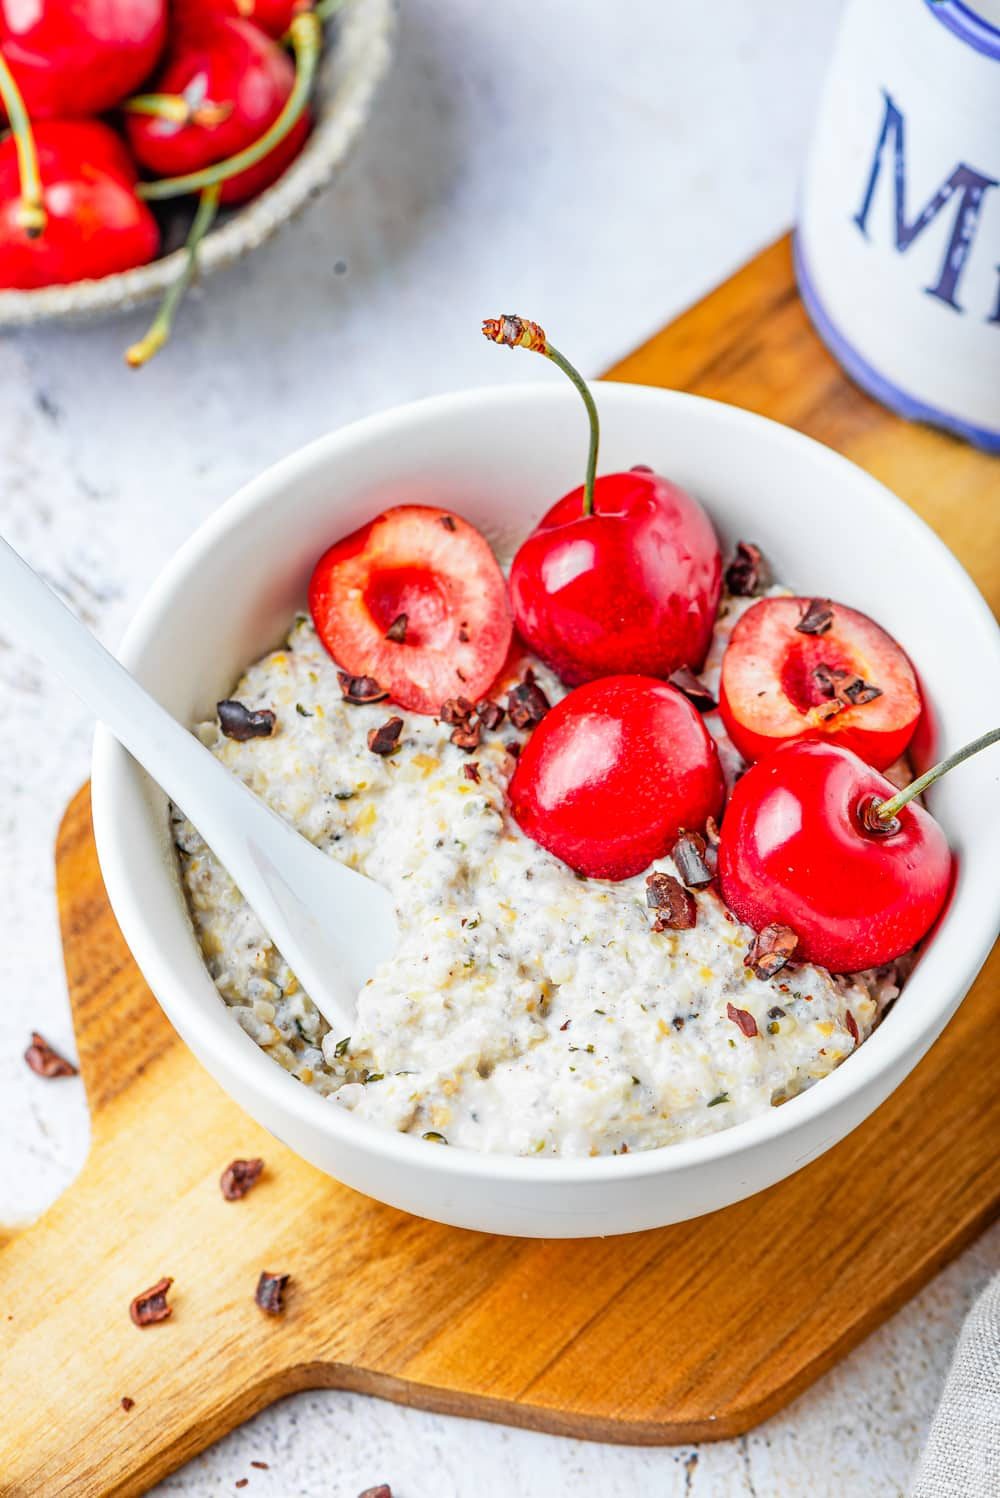 A white bowl filled with oatmeal, low carb chocolate, and a few cherries on a wooden cutting board.